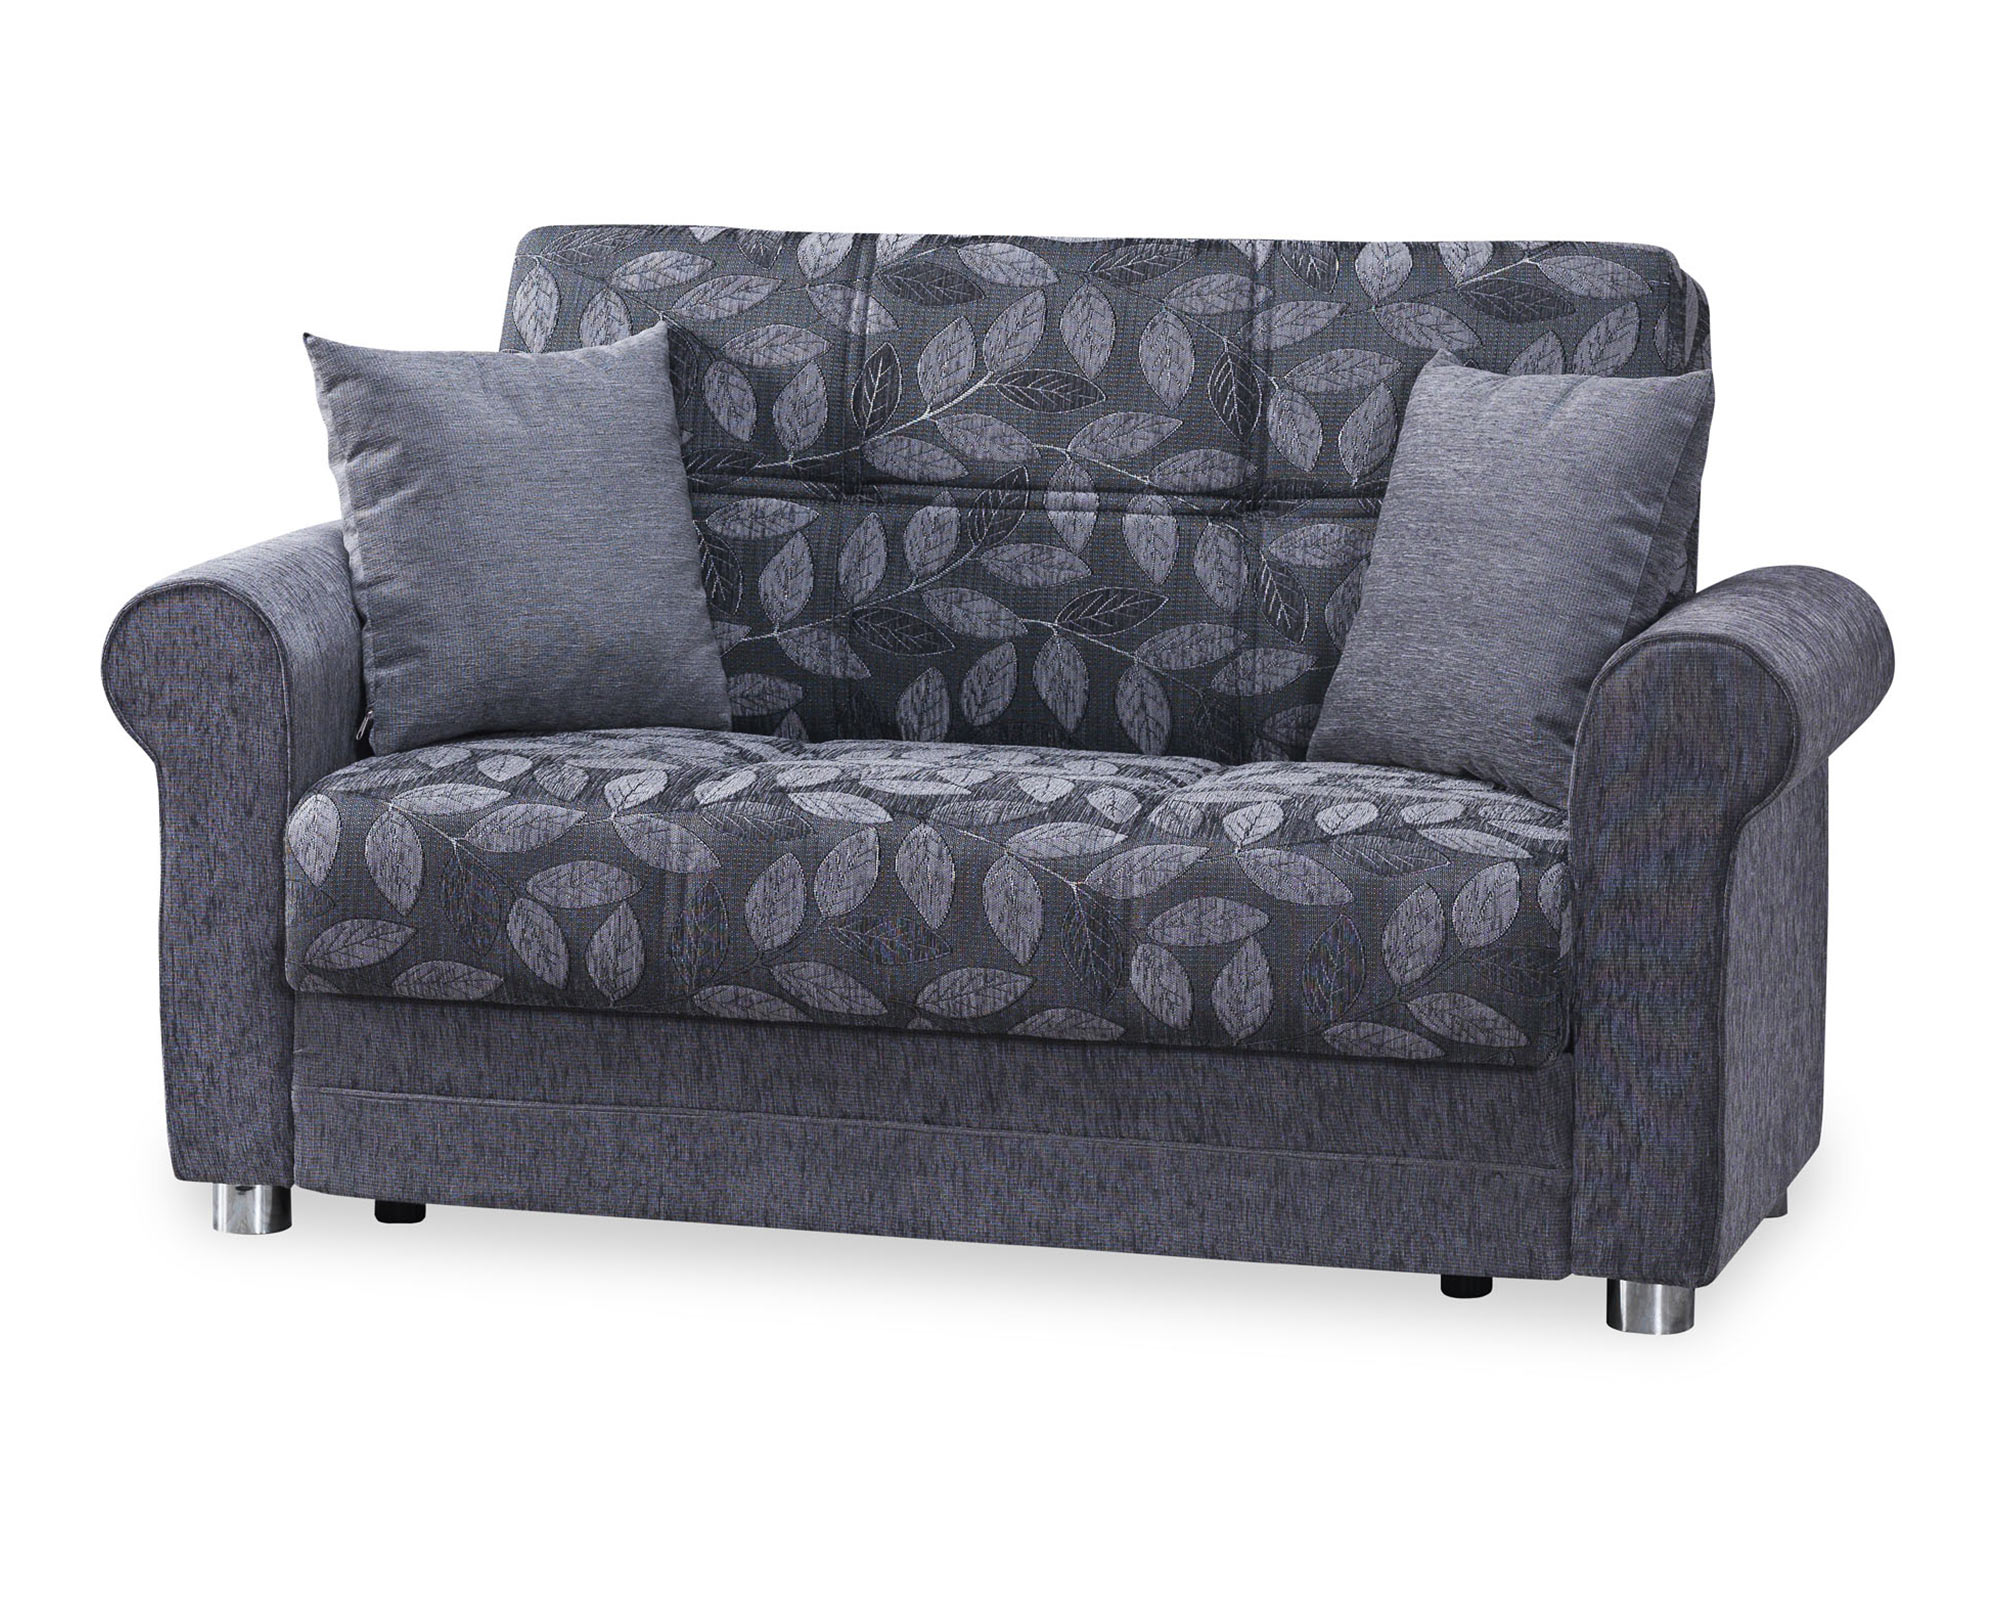 Rio Gray Convertible Loveseat by Casamode